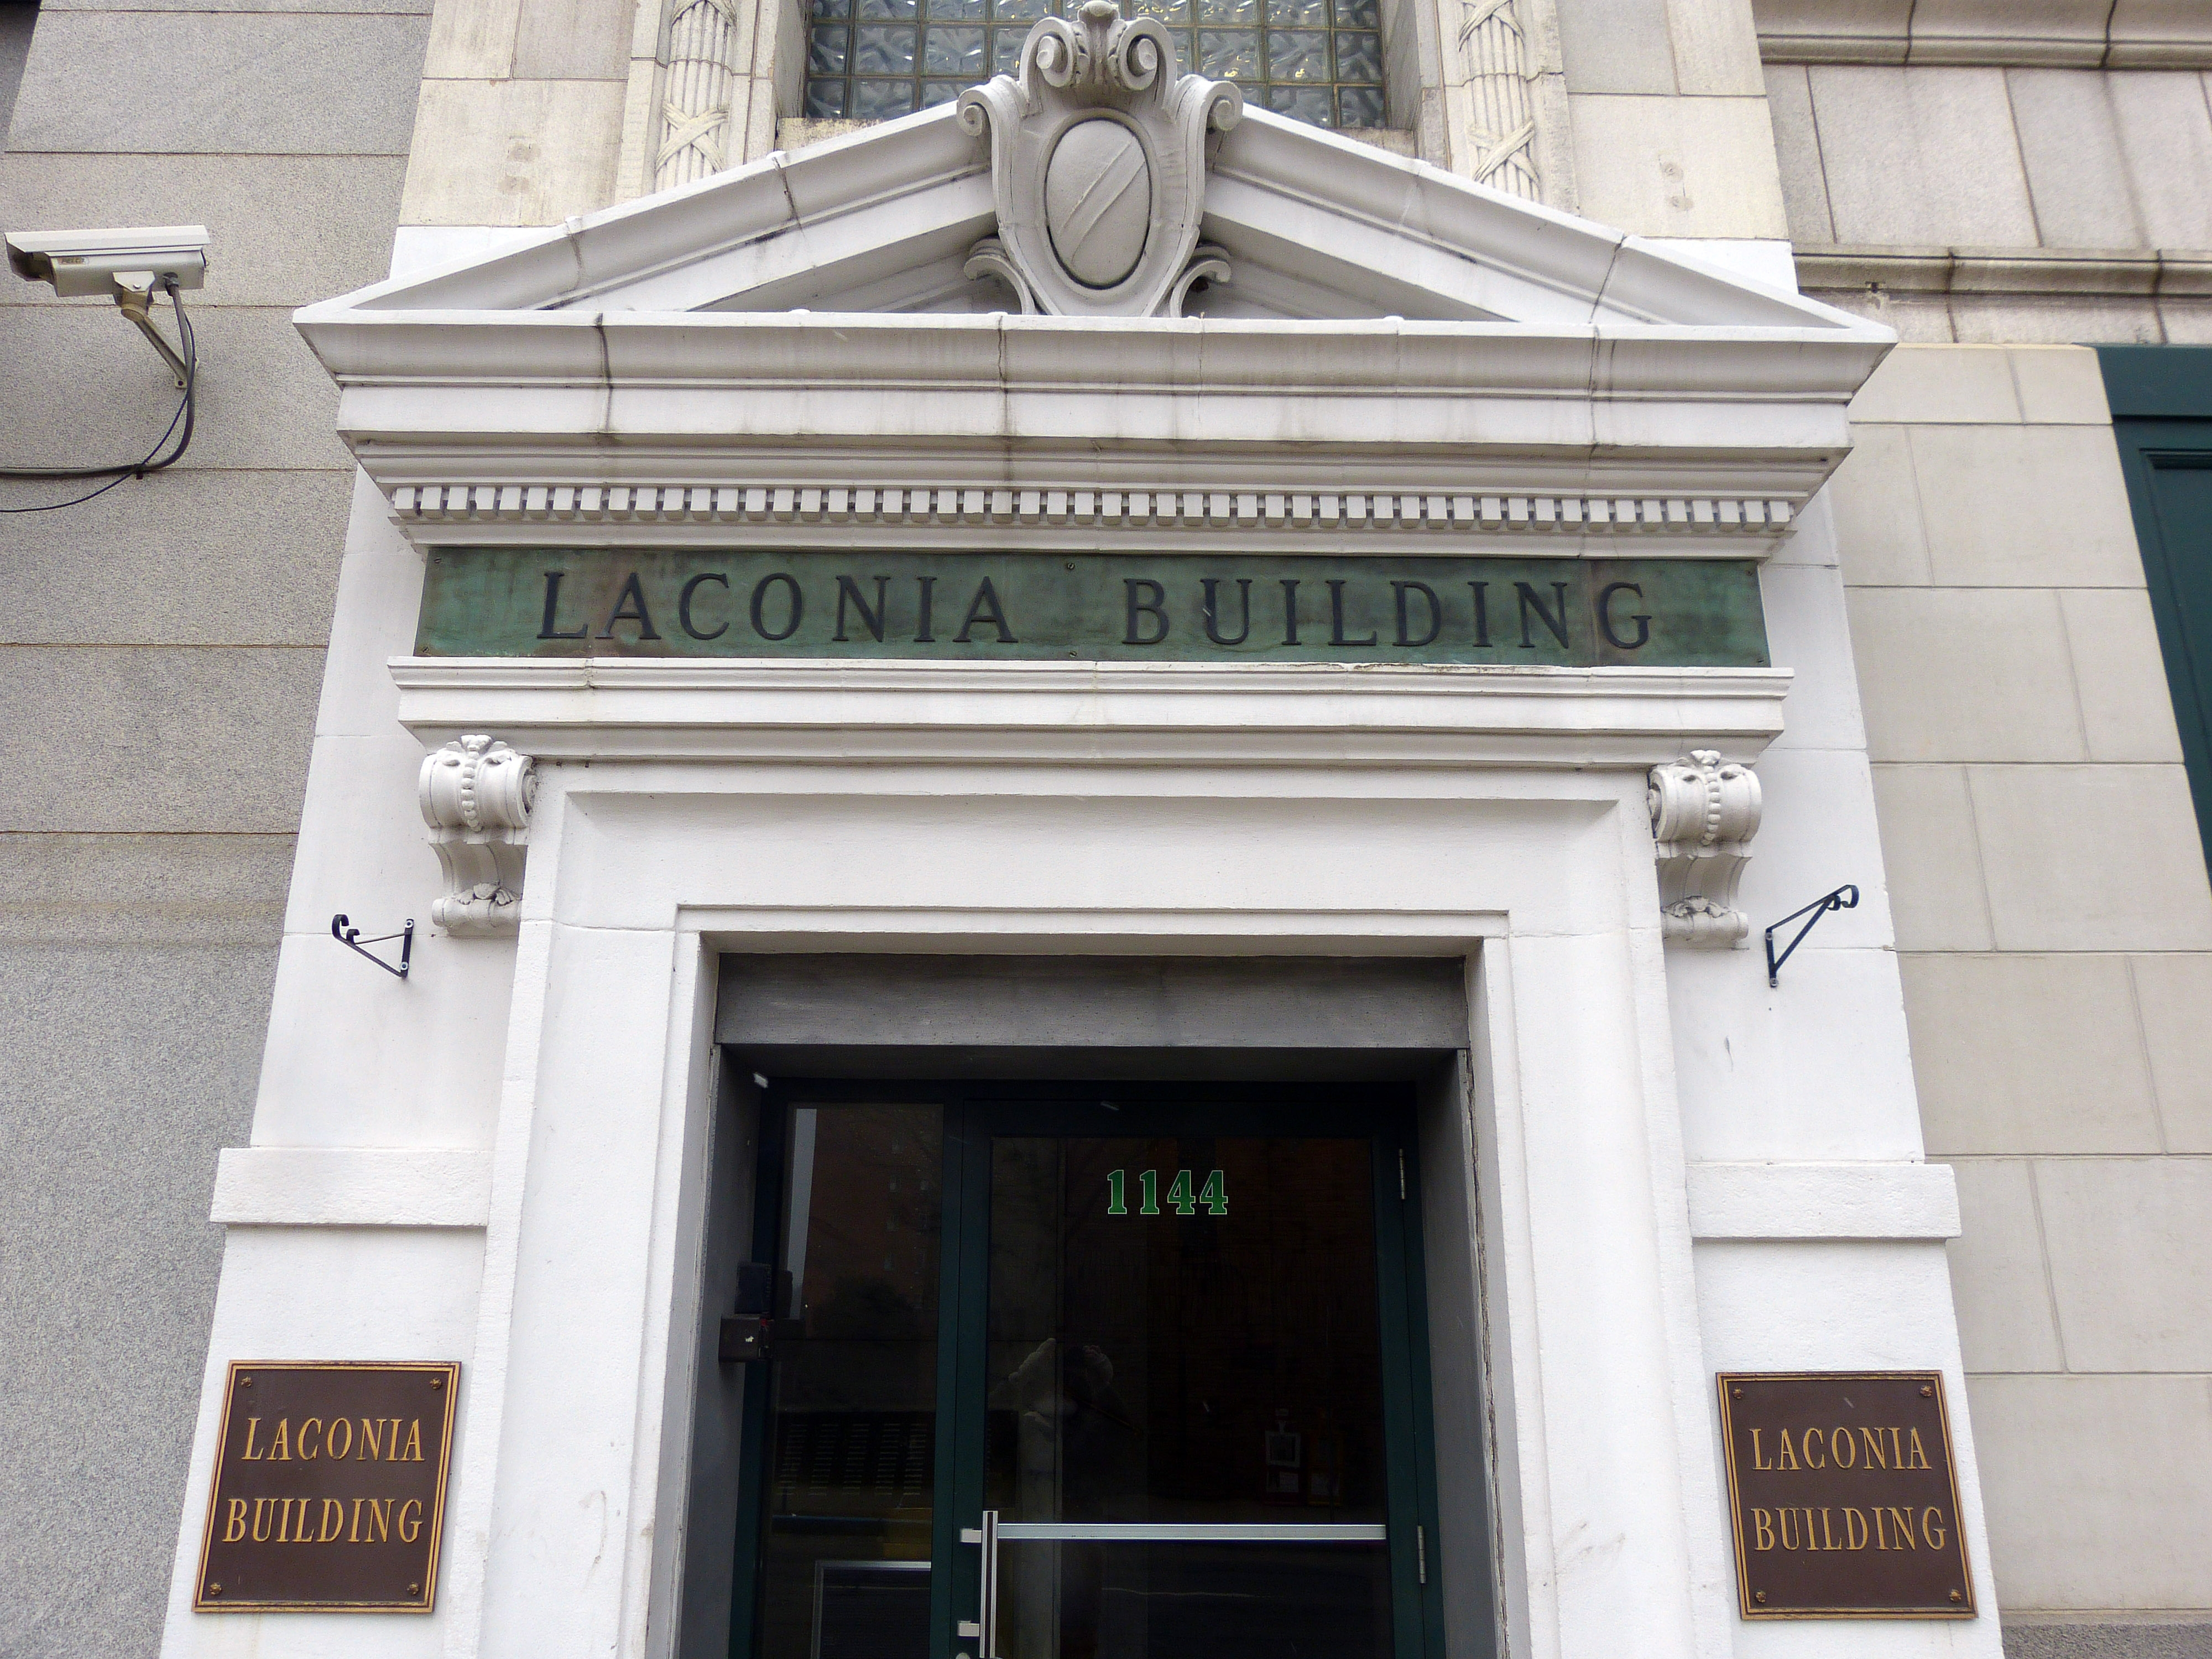 The Laconia Building